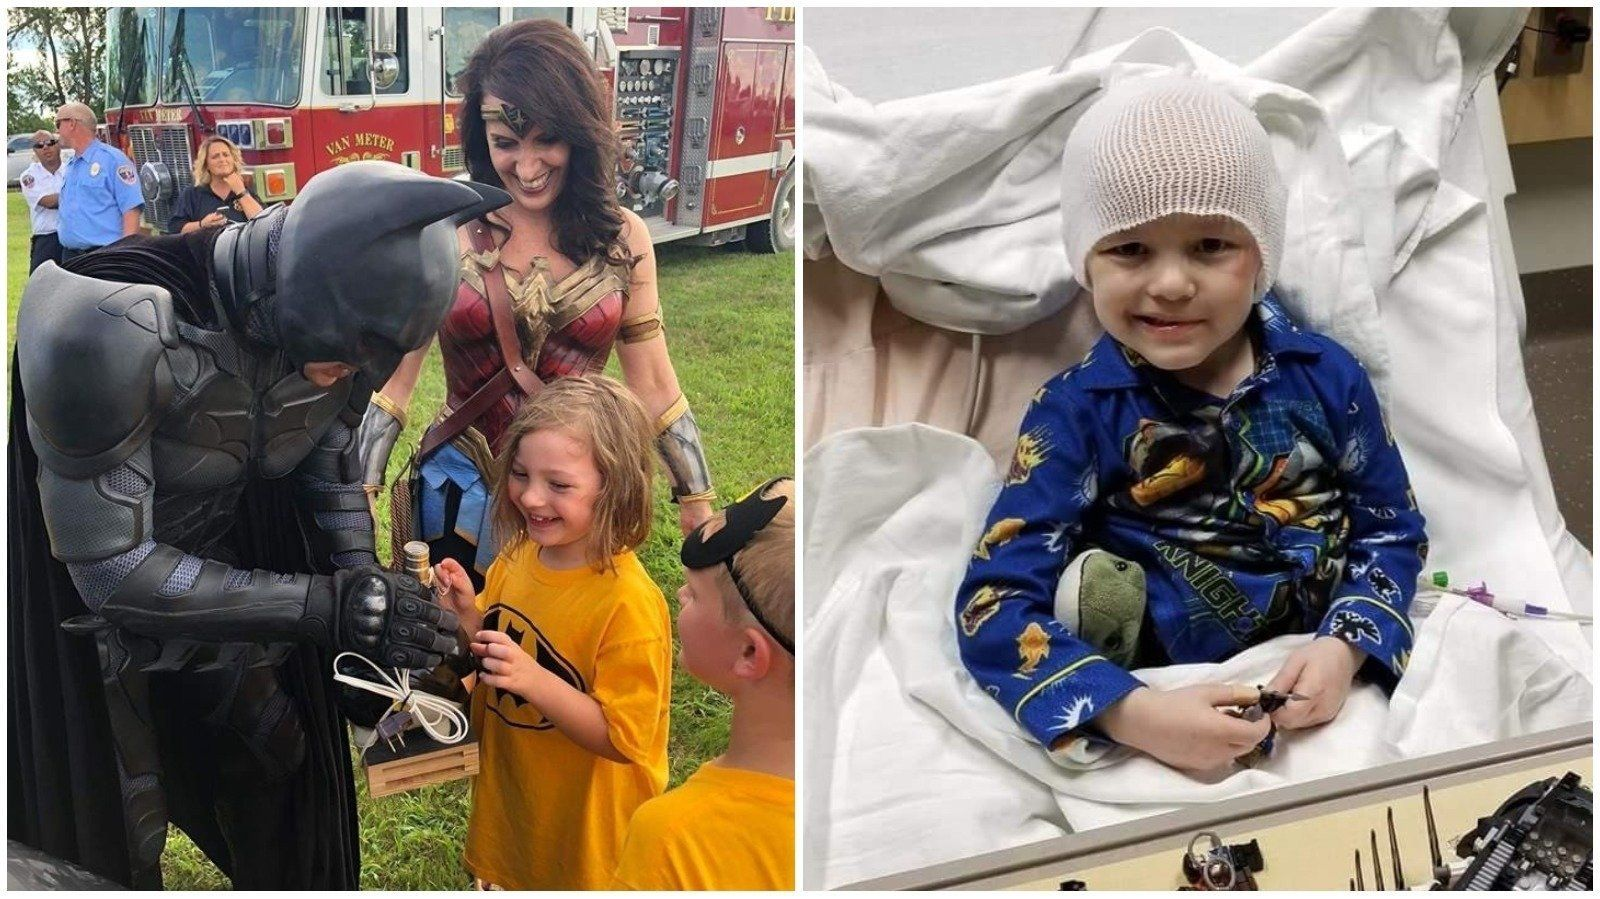 Batman And Wonder Woman Honour Last Wishes Of Boy Who Wrote His Own